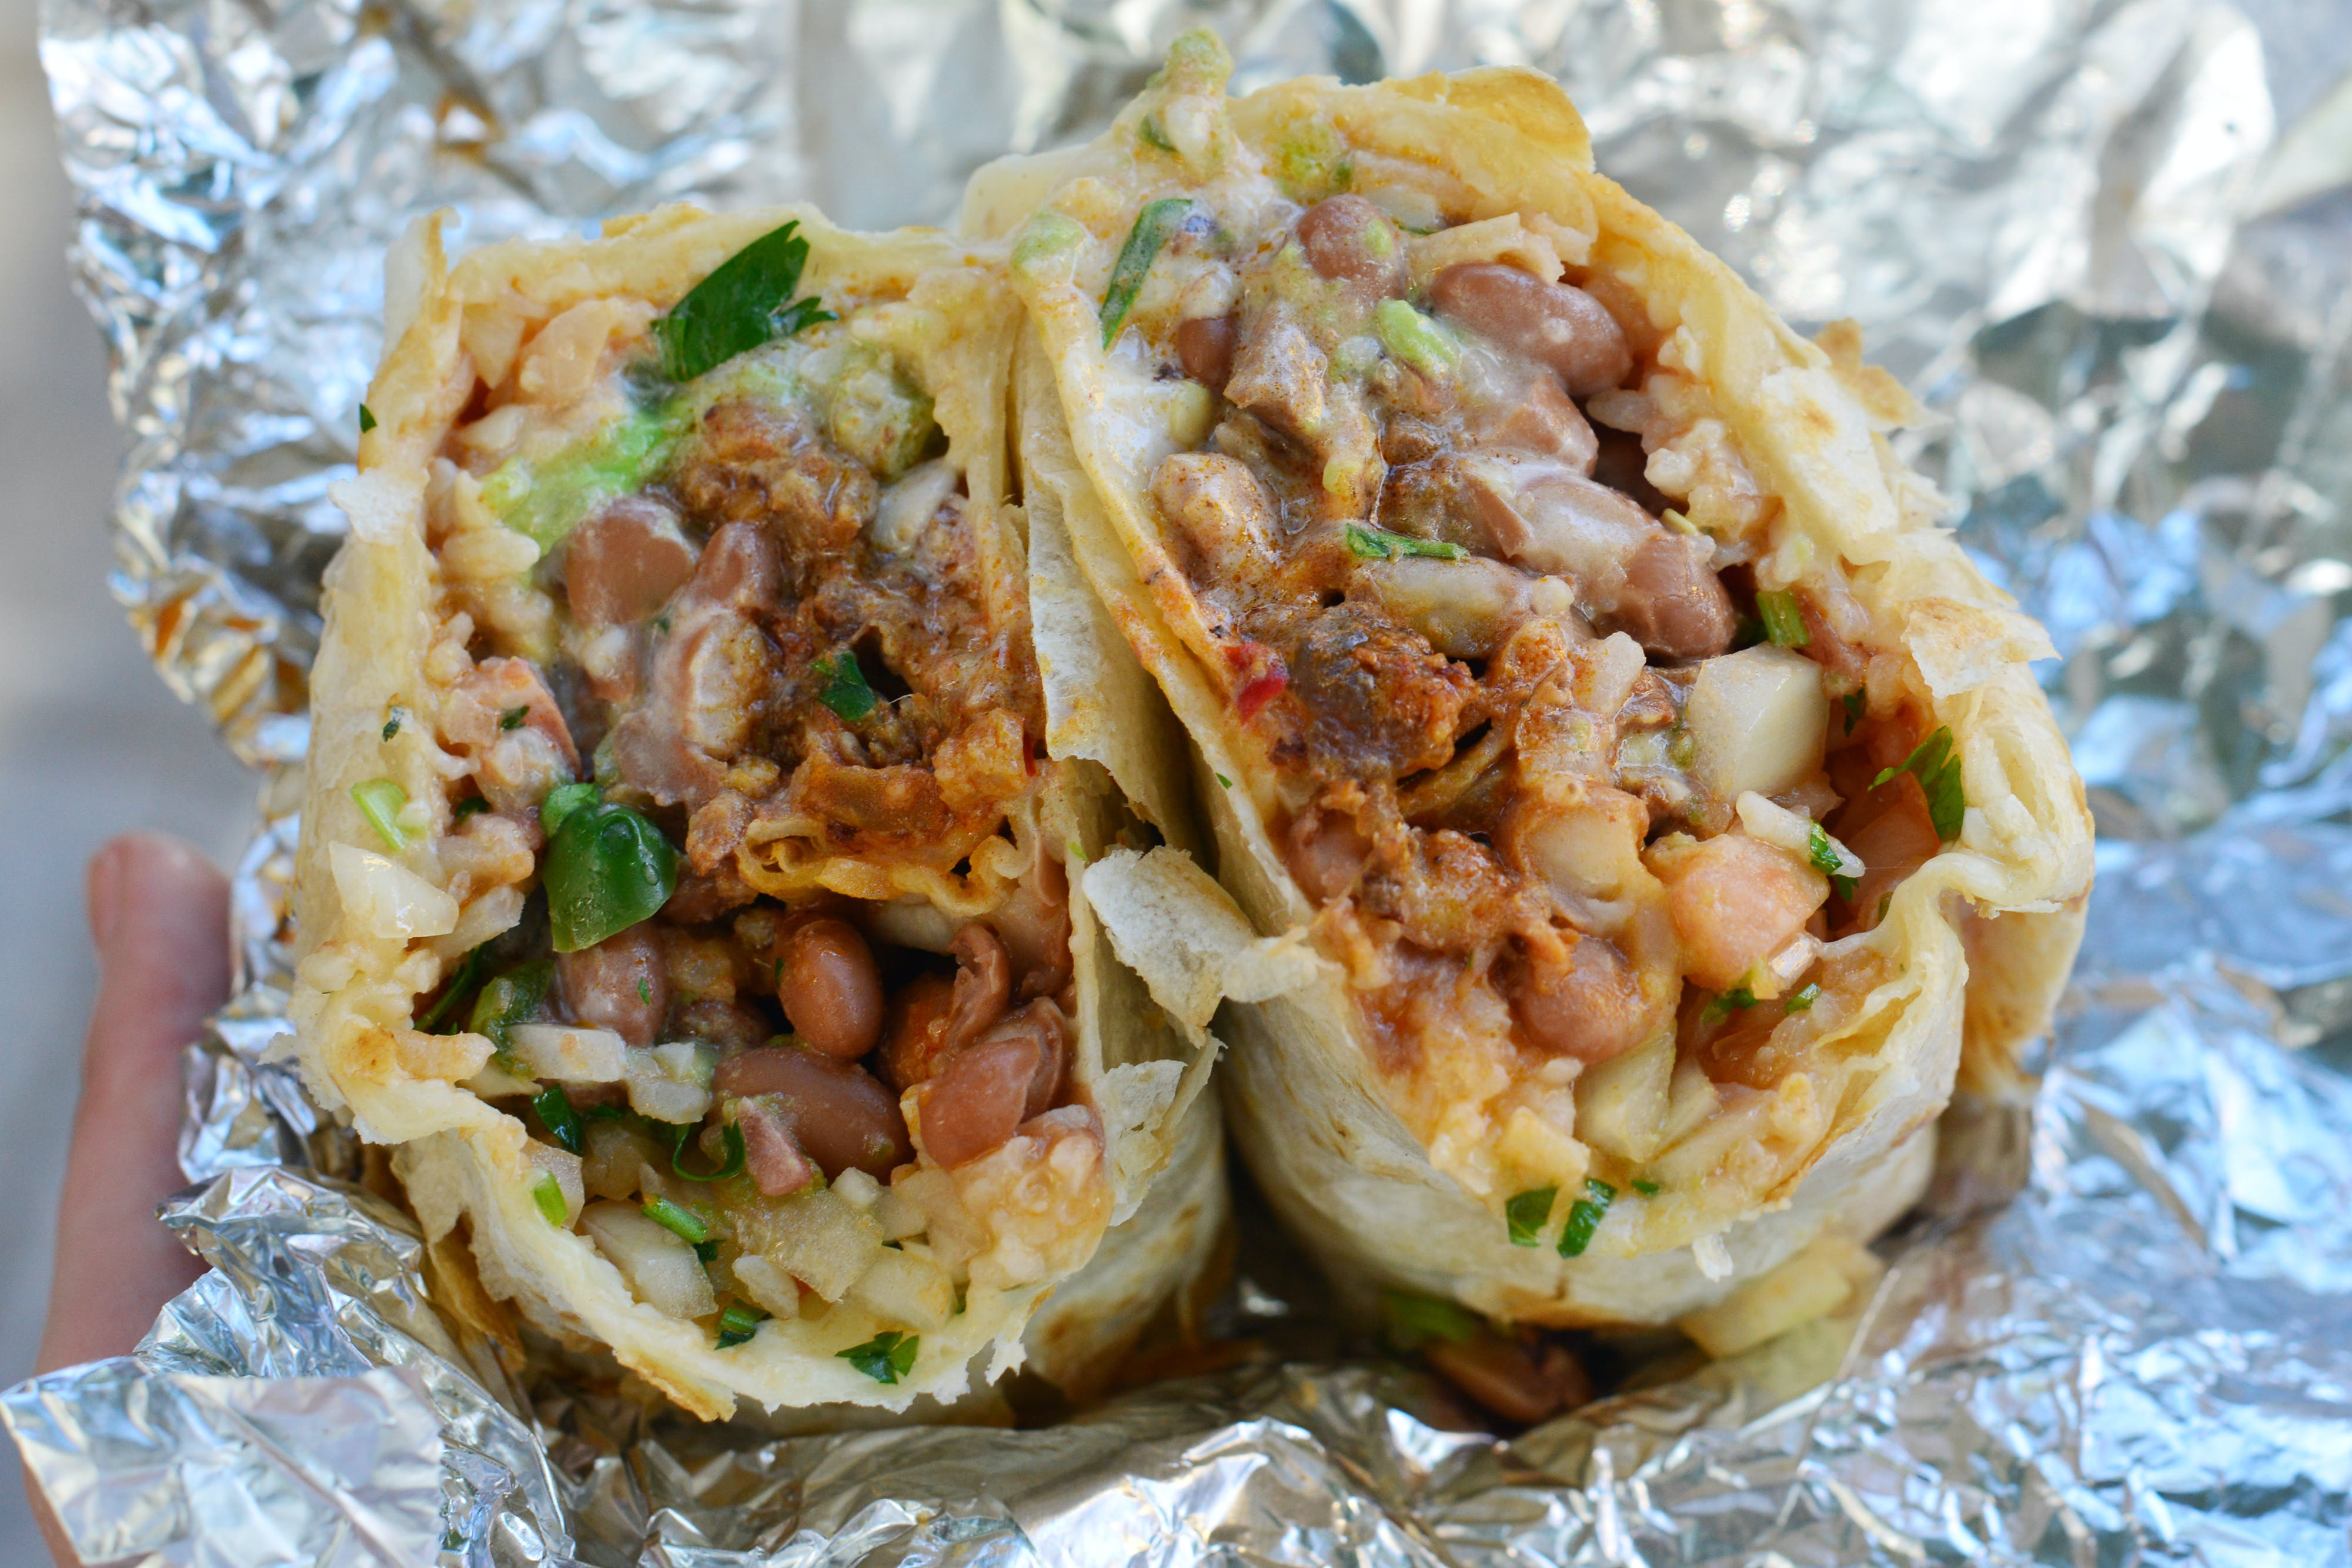 Taqueria Cancun Al Pastor Burrito san francisco cheap eats